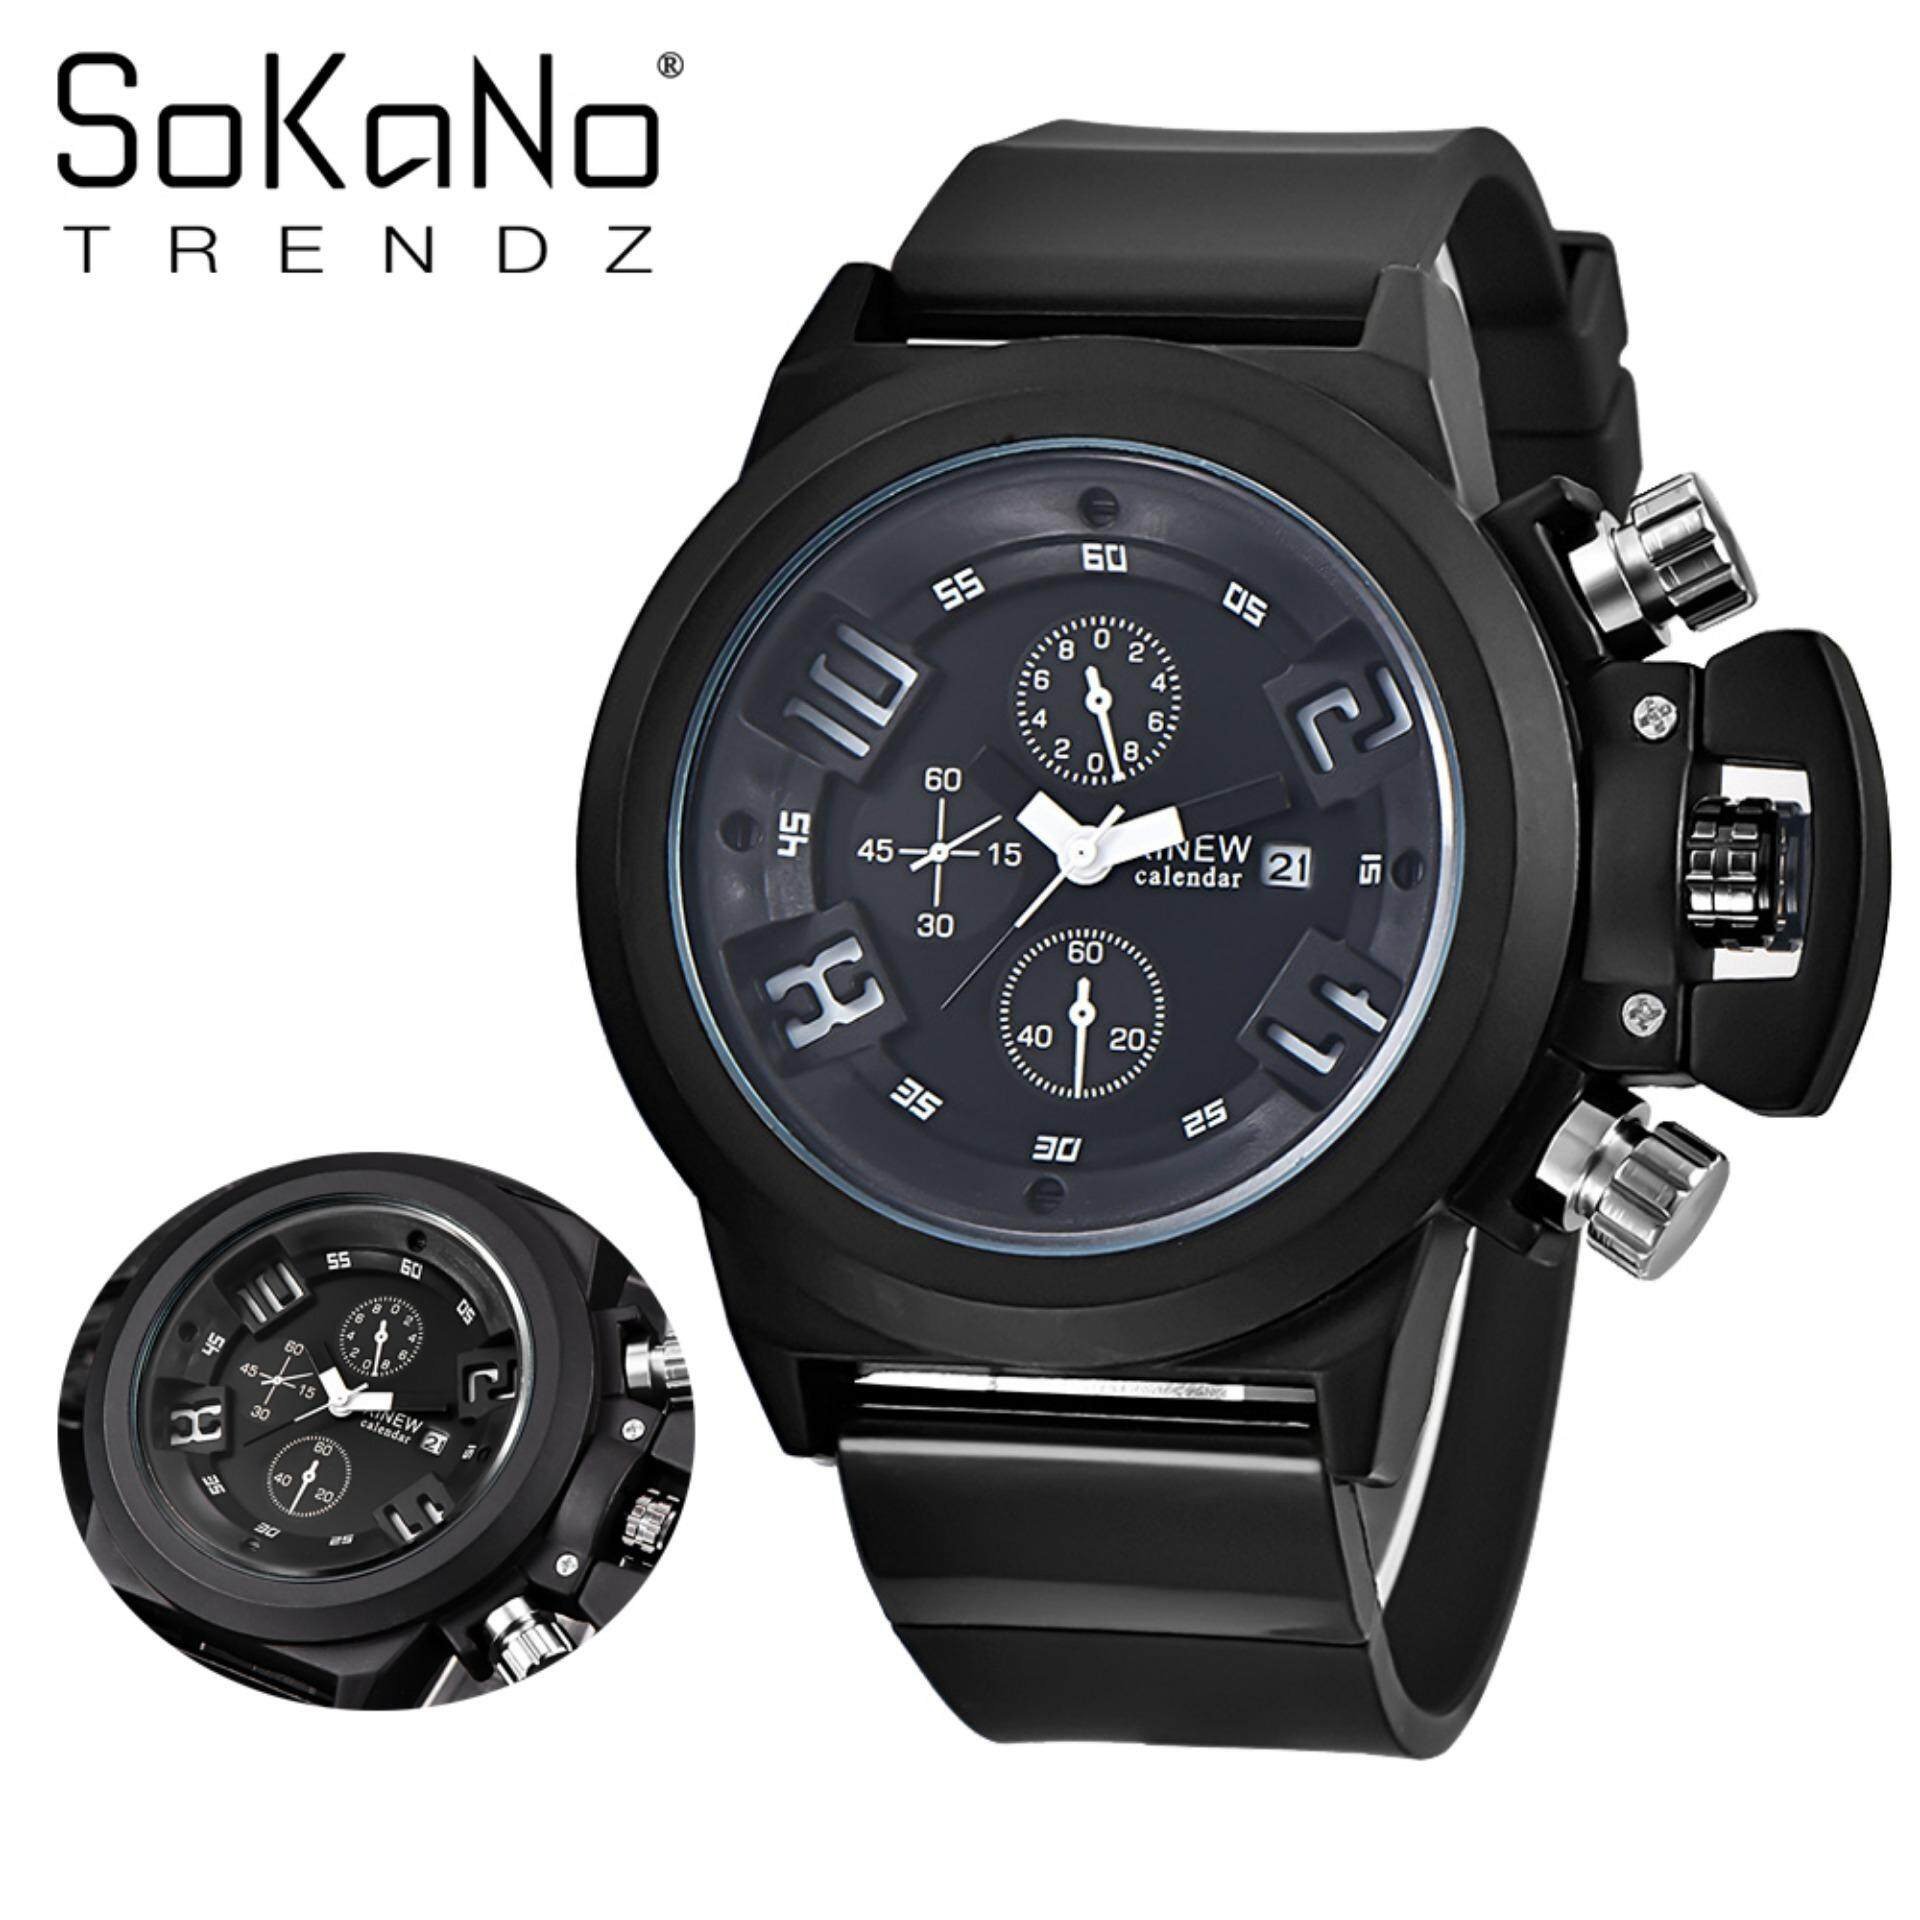 SoKaNo Trendz 7166 Men Premium Sport Watch - Black